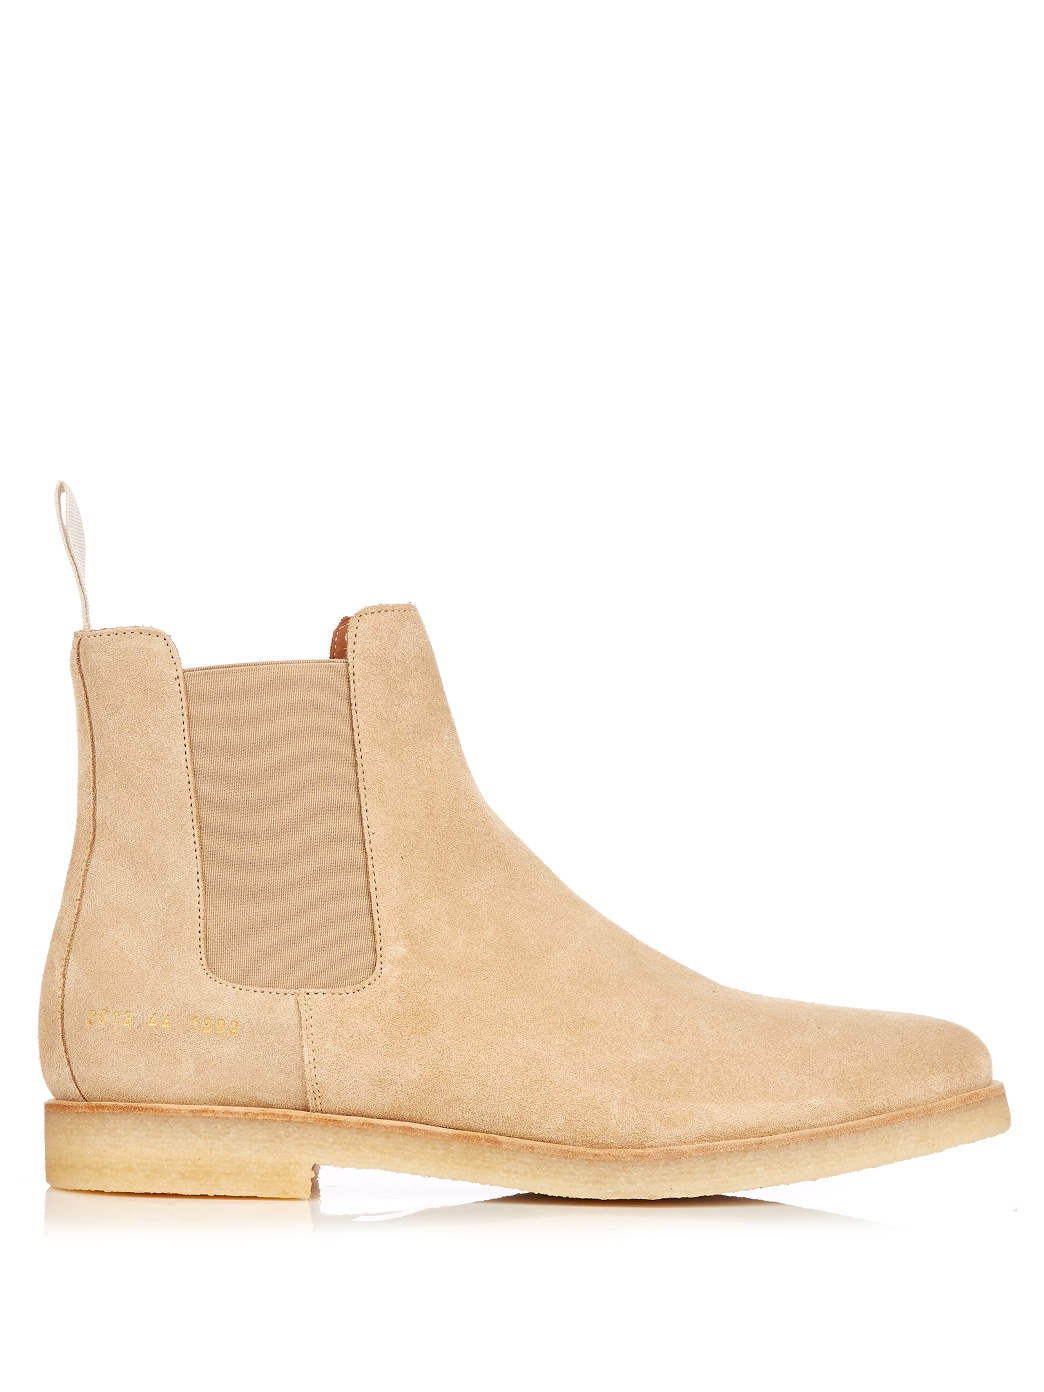 Common Projects Suede Chelsea Boots.jpg